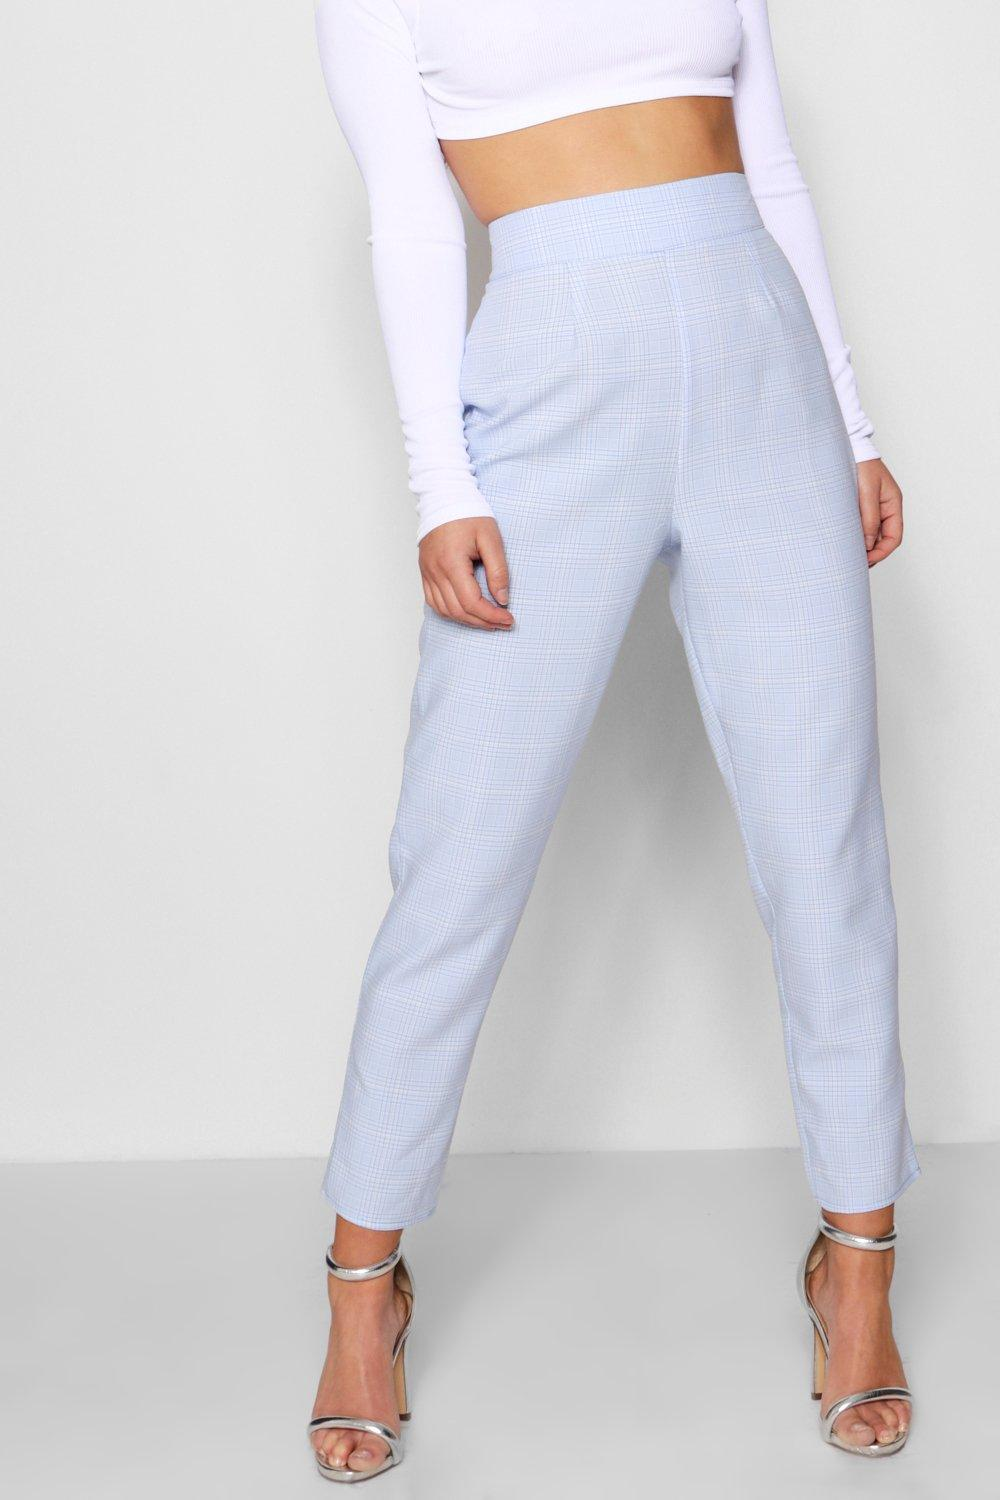 Pastel High Trousers Petite lilac Waisted Woven Check xz86qnwqv